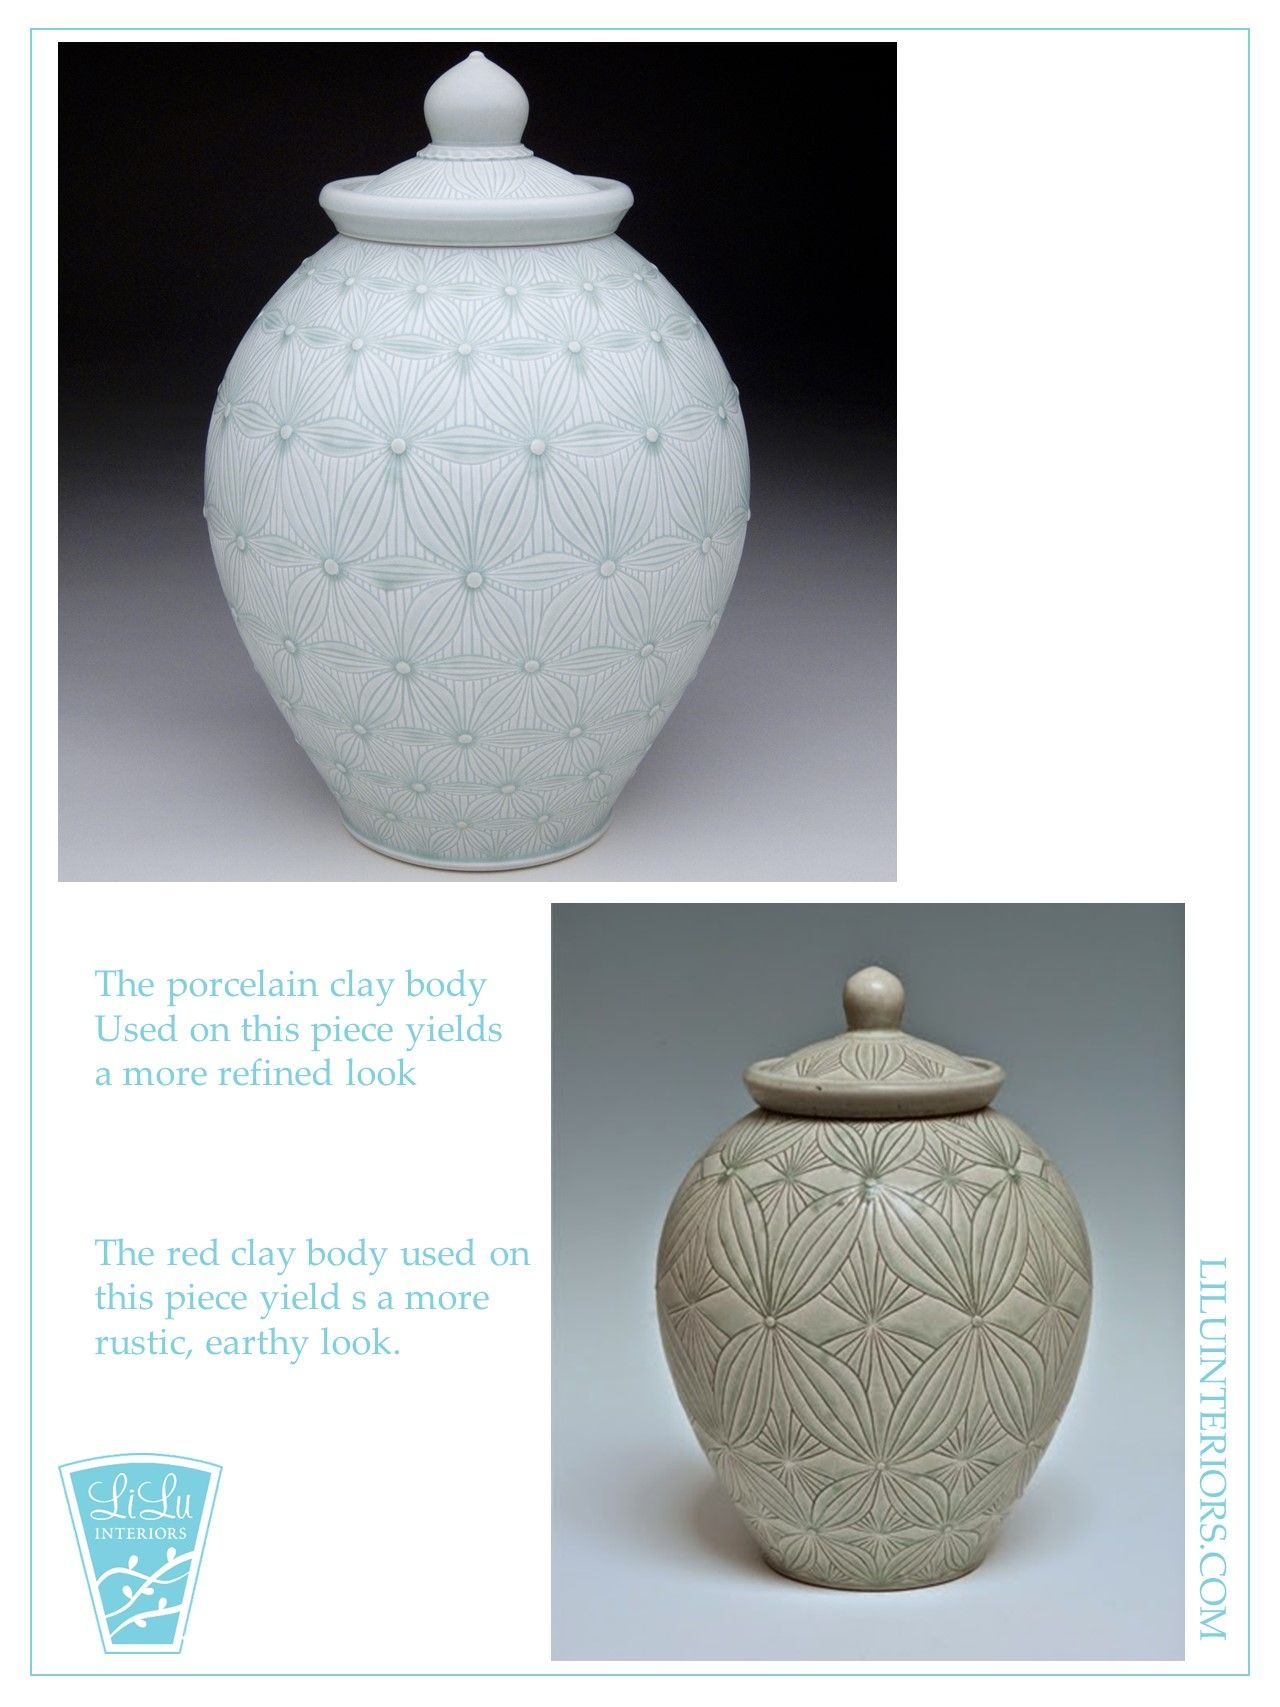 Porcelain clay gives a more elegant look while red clay produces a more rustic one! Check out more here and find what fits your home!  #interiordesign #interior #design #interiorinspo #designinspo #inspiration #interiordesigner #liluinteriors #lilumpls #lilu #mpls #minneapolis #pottery #porcelain #porcelainpottery #handmadepottery #handmade #handcrafted #handcraftedpottery #potteryinspo #art #artinspo